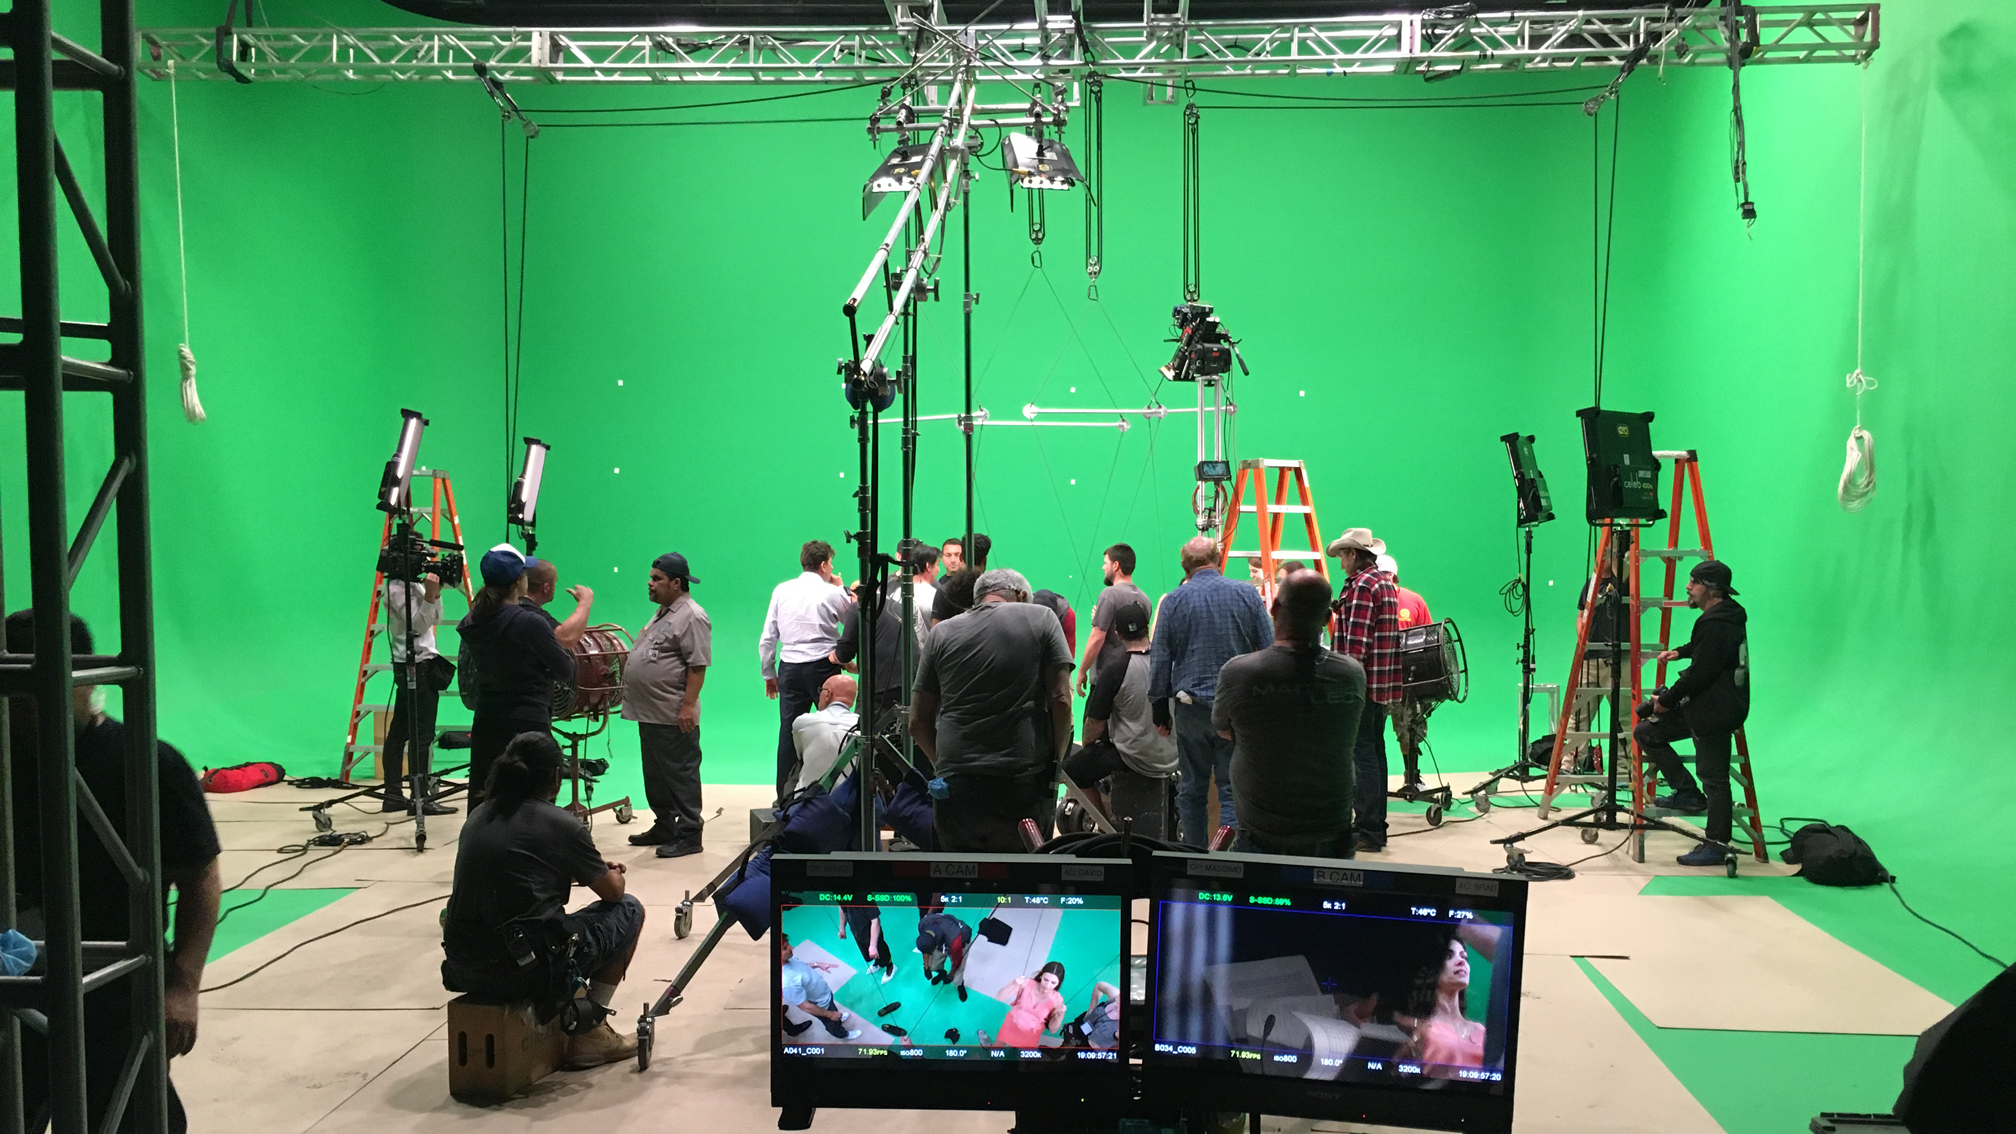 Stage 11 Thunder Studios Wire Harness Space From Feature Films To National Campaigns This Has Seen Everything High Stunts Award Winning Vr Executions